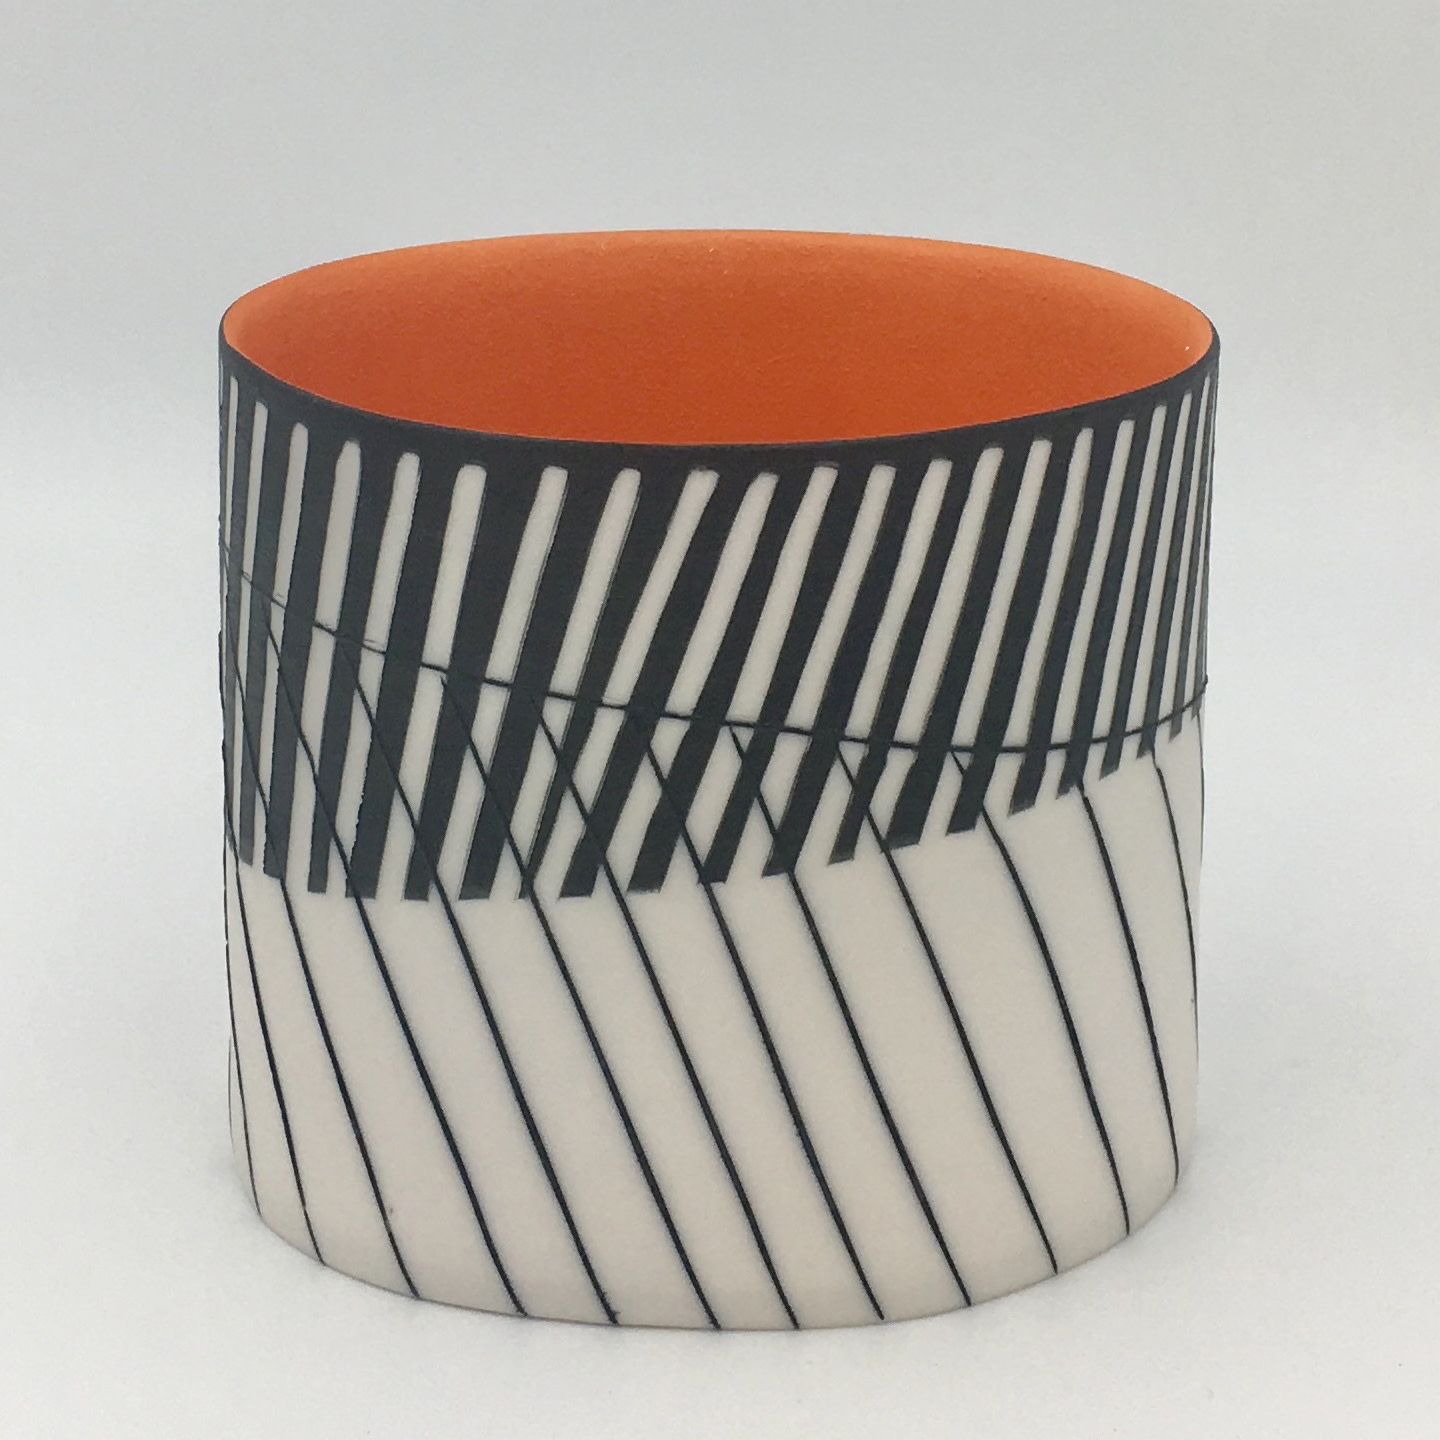 "<span class=""link fancybox-details-link""><a href=""/artists/195-lara-scobie/works/6525-lara-scobie-oval-vessel-with-orange-interior-2019/"">View Detail Page</a></span><div class=""artist""><strong>Lara Scobie</strong></div> <div class=""title""><em>Oval Vessel with Orange Interior</em>, 2019</div> <div class=""medium"">Porcelain</div><div class=""copyright_line"">Own Art: £25 x 10 Months, 0% APR</div>"